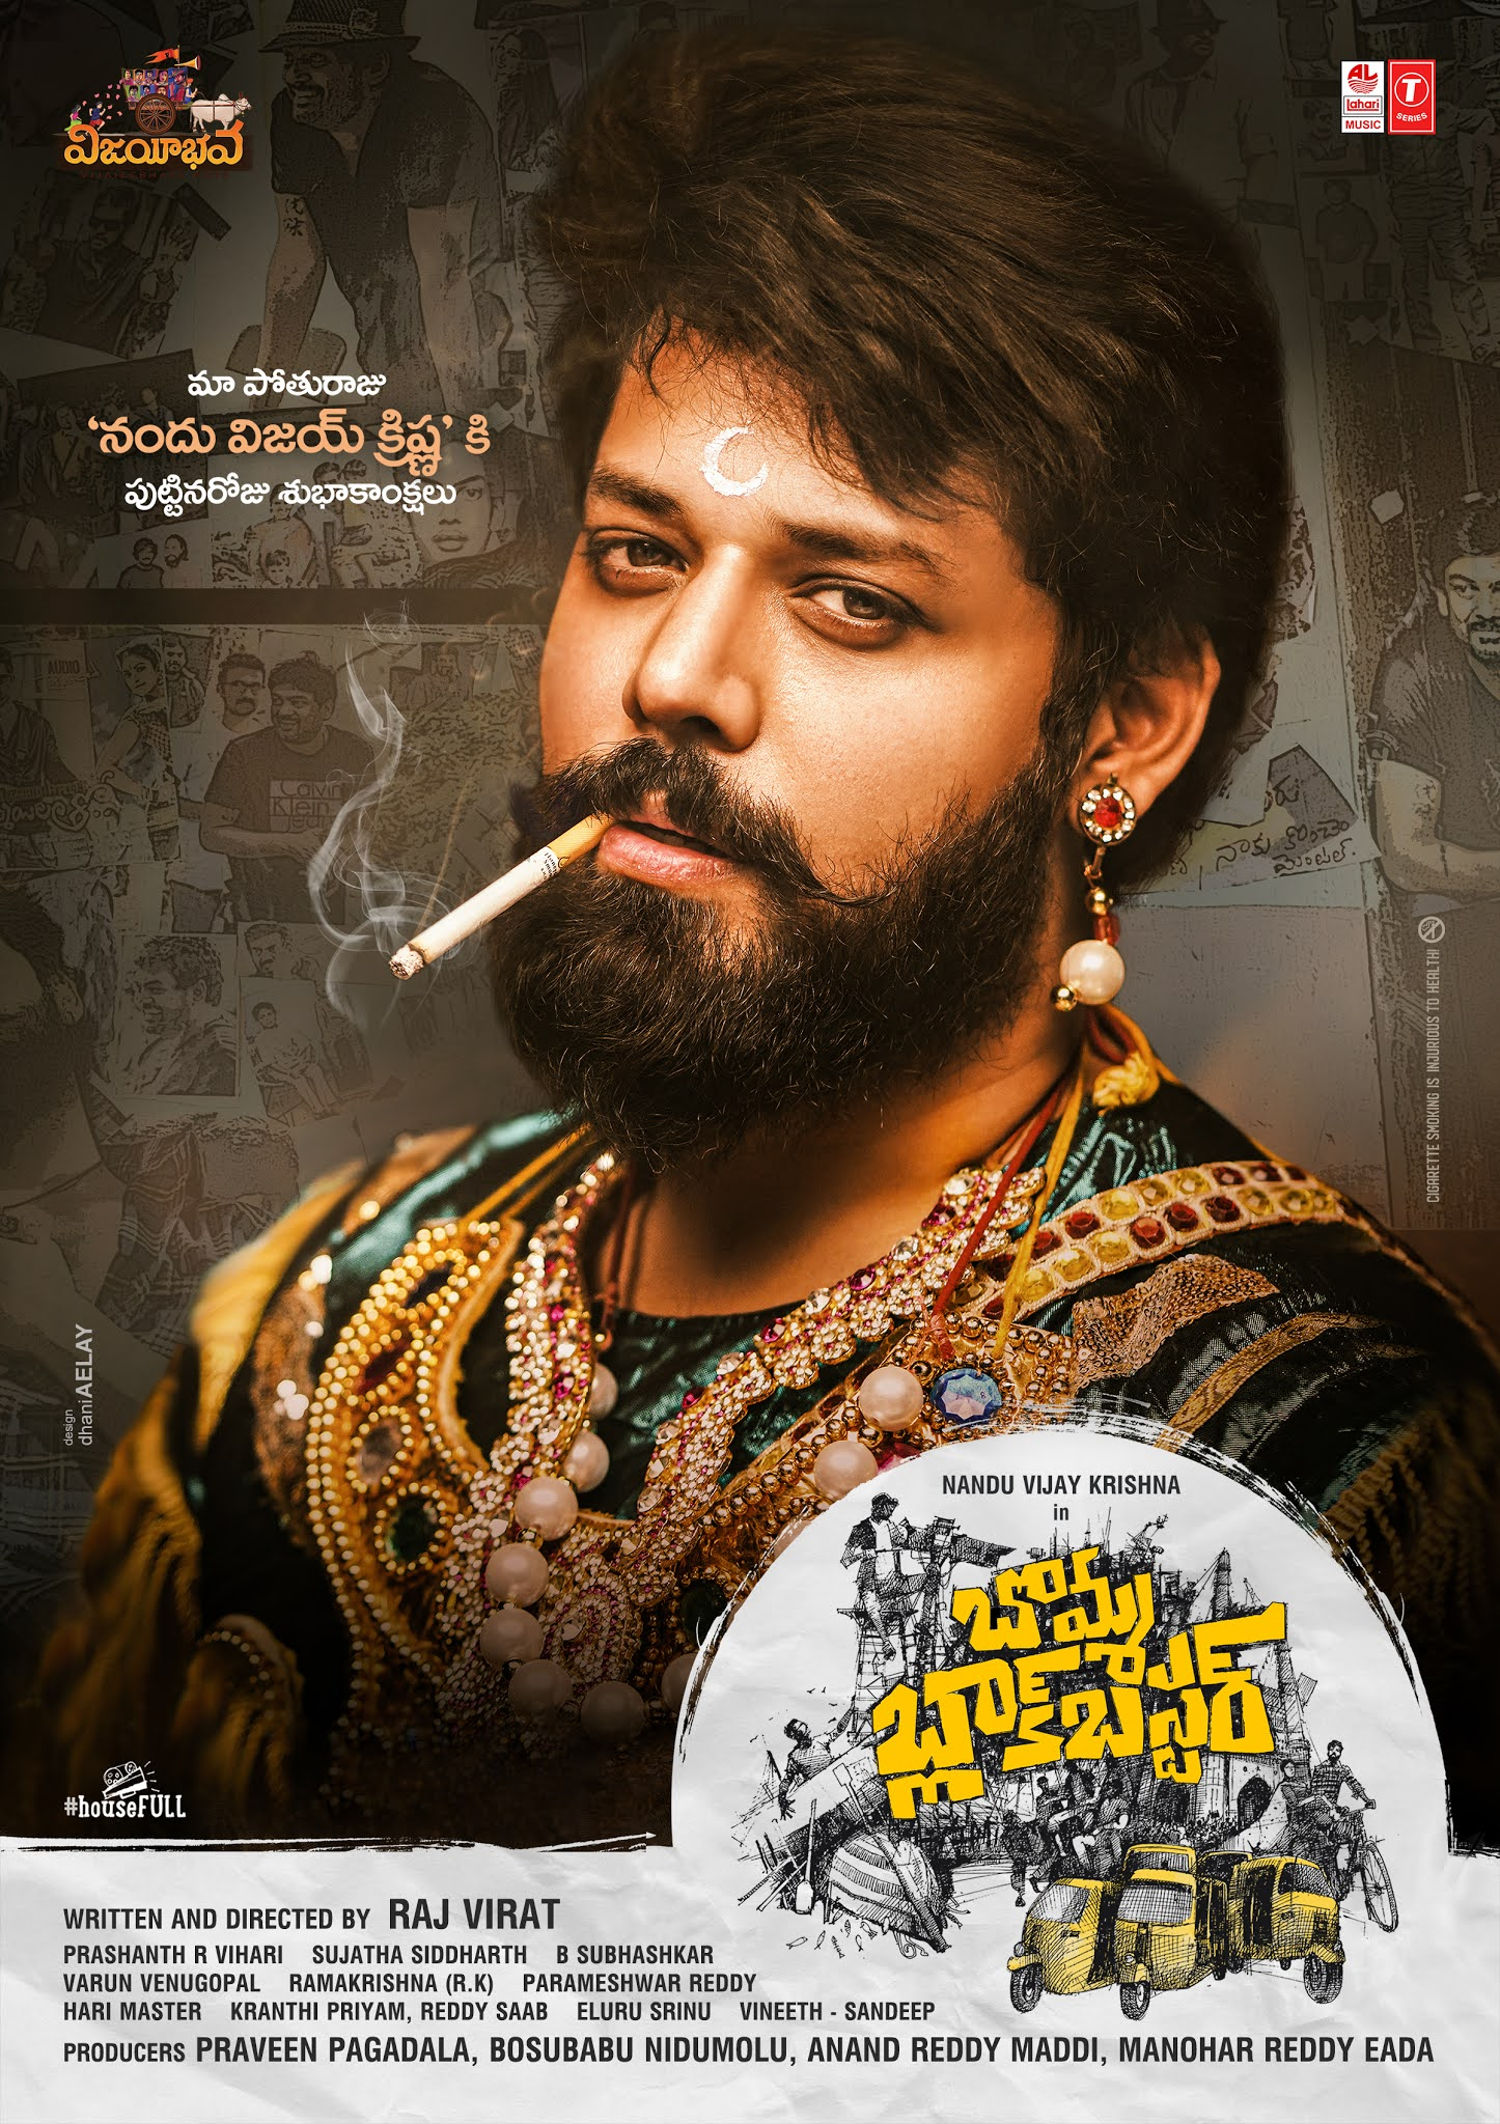 First look poster of Bomma Blockbuster launched on occasion of Nandu's birthday